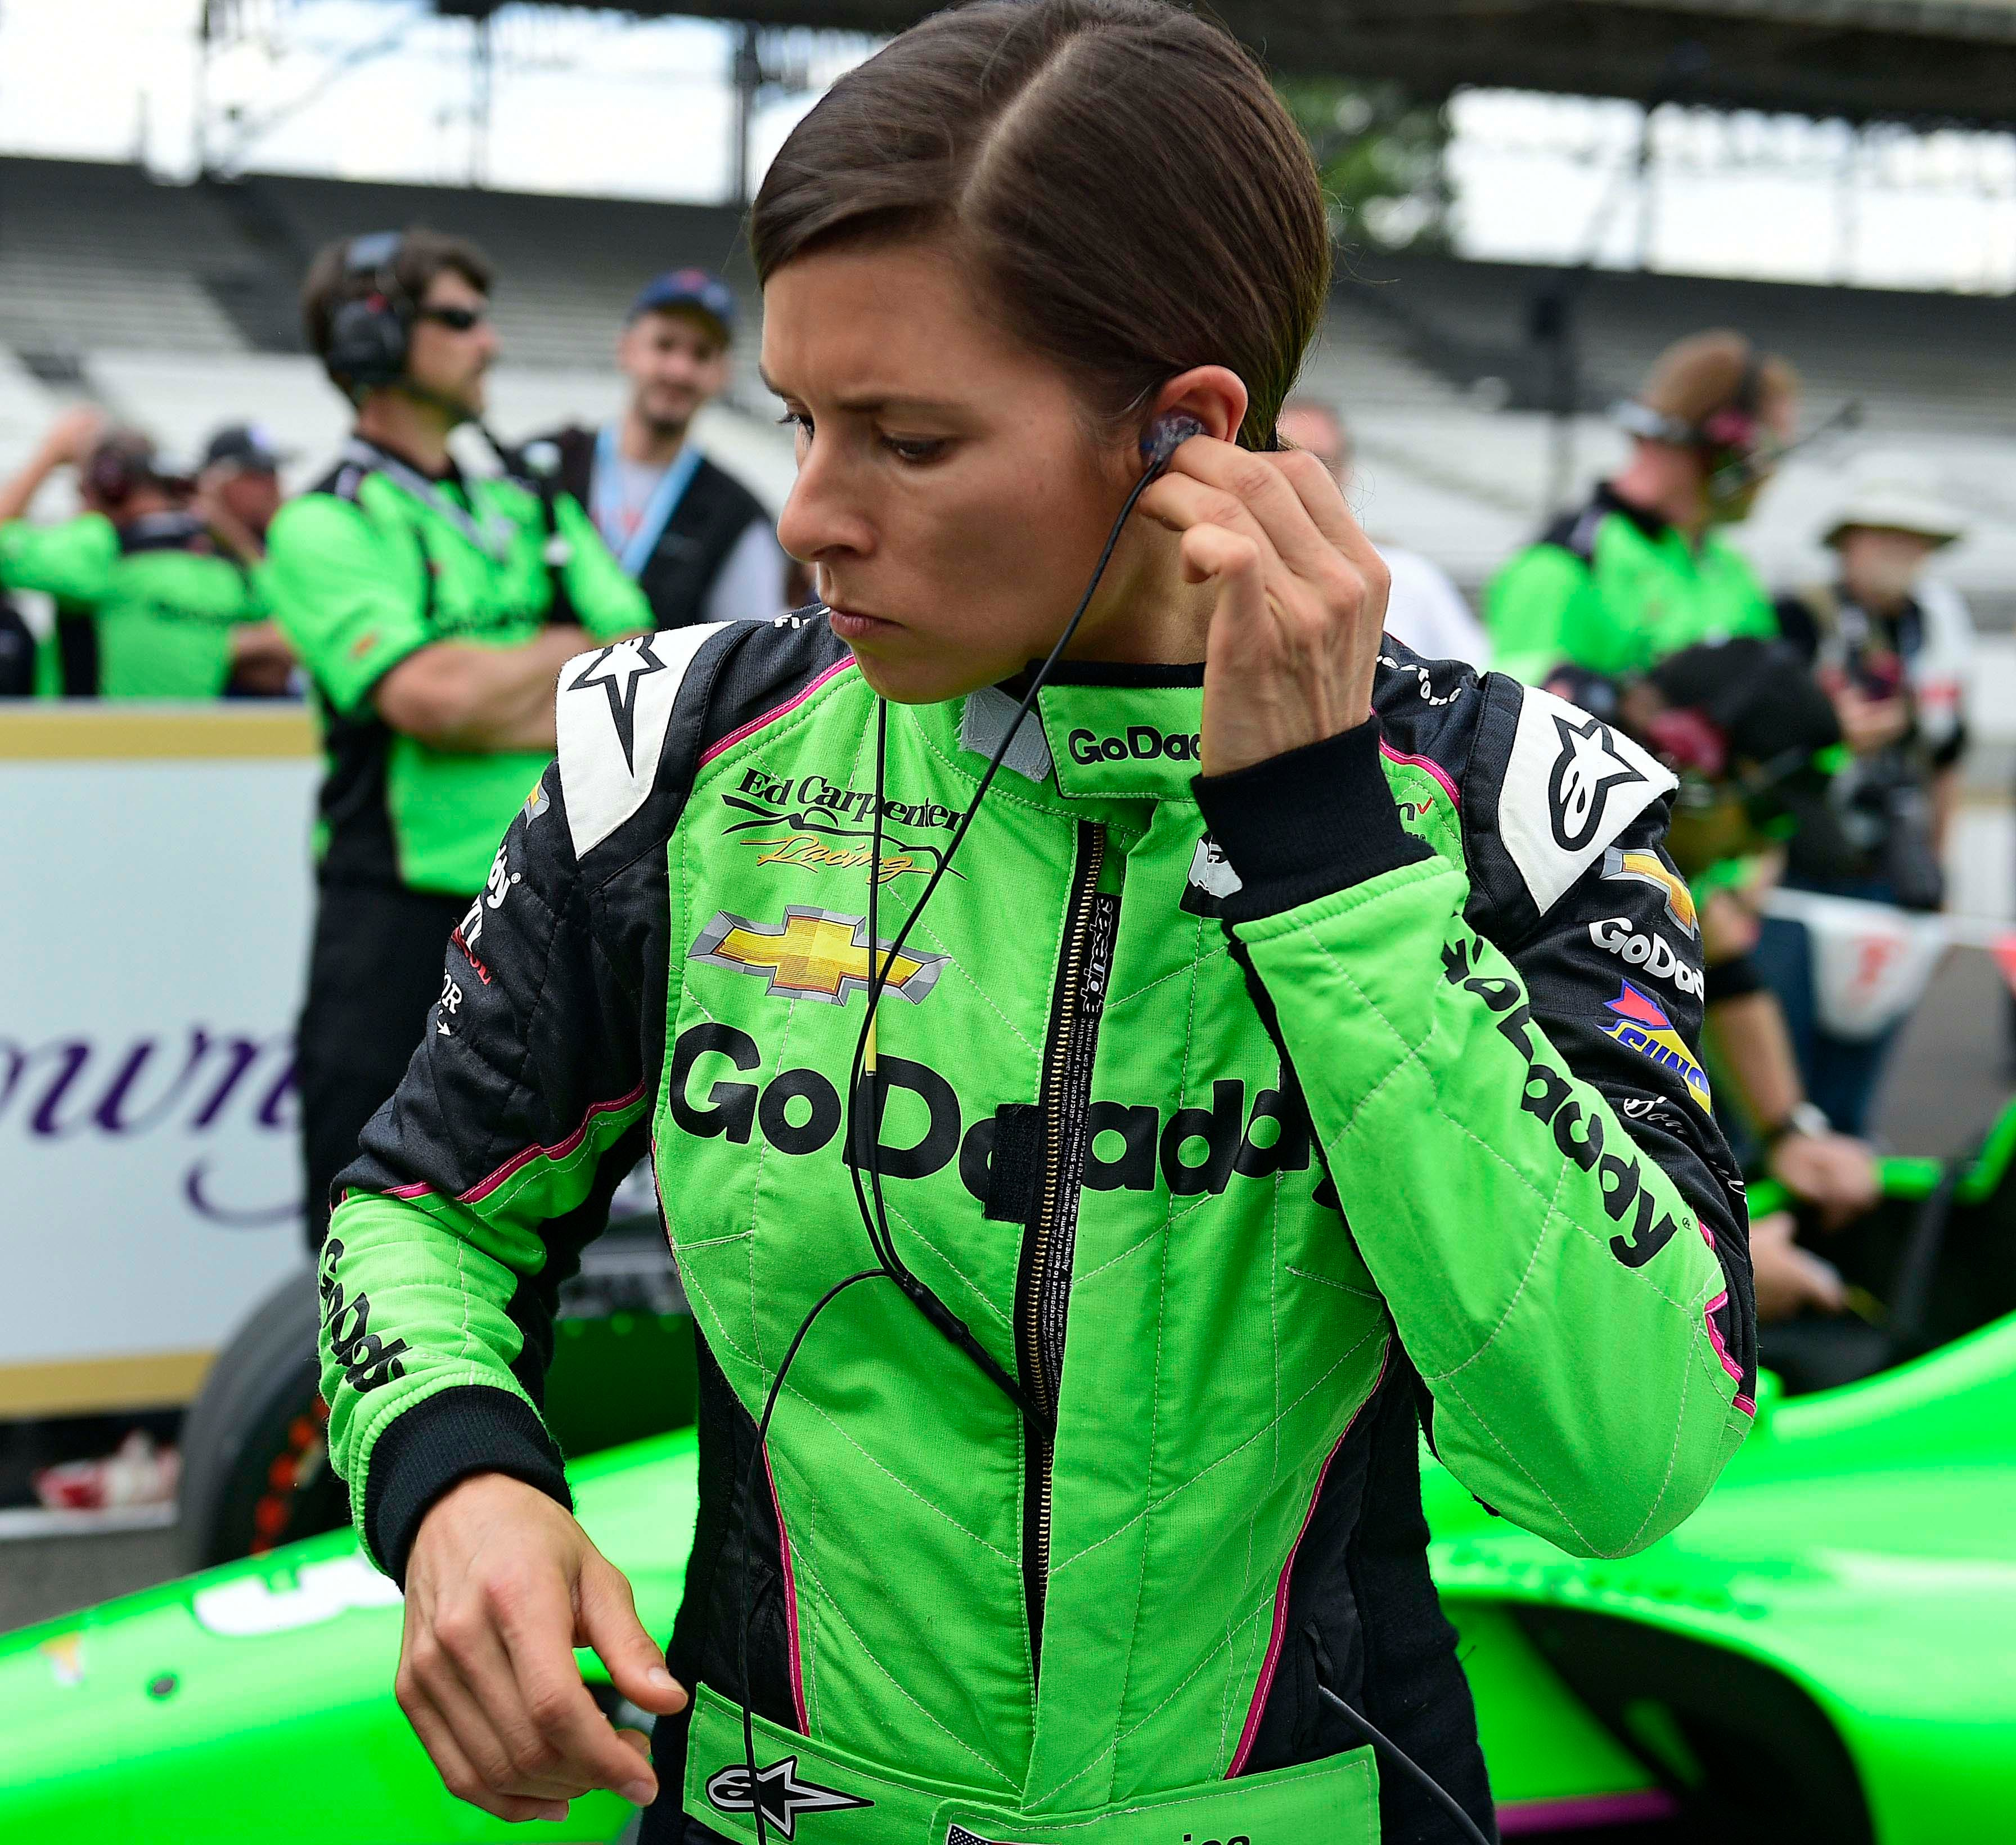 Lyn St. James 9th at Indianapolis 500 Lyn St. James 9th at Indianapolis 500 new pictures